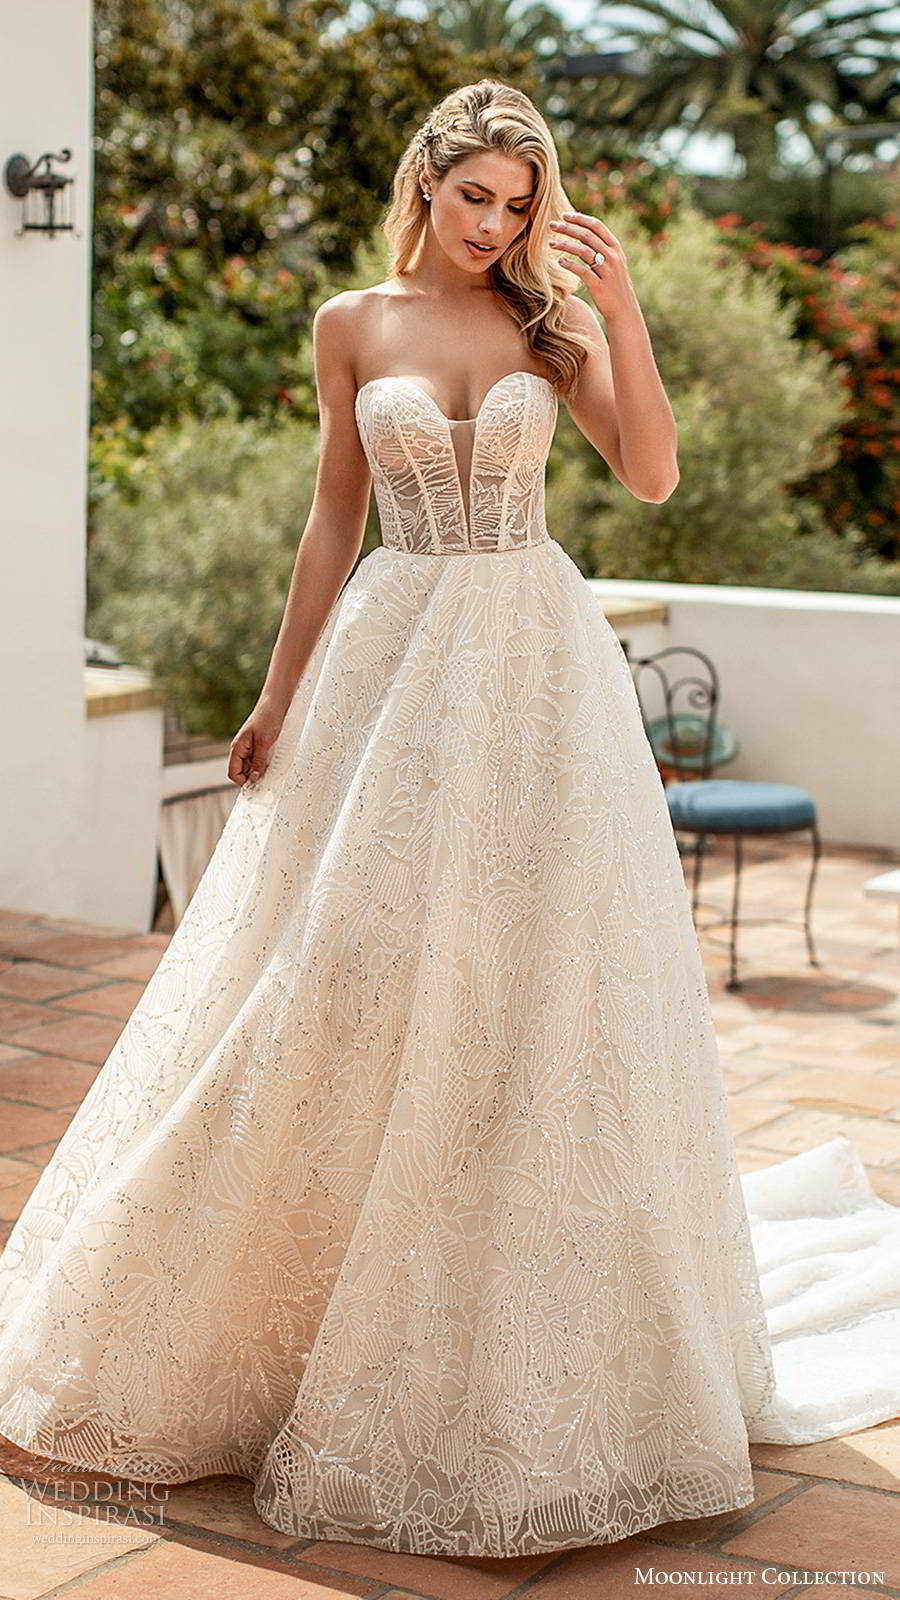 moonlight collection spring 2020 bridal straplesss sweetheart neckline sheer bodice fully embellished glitzy romantic a line ball gown wedding dress chapel train (9) mv